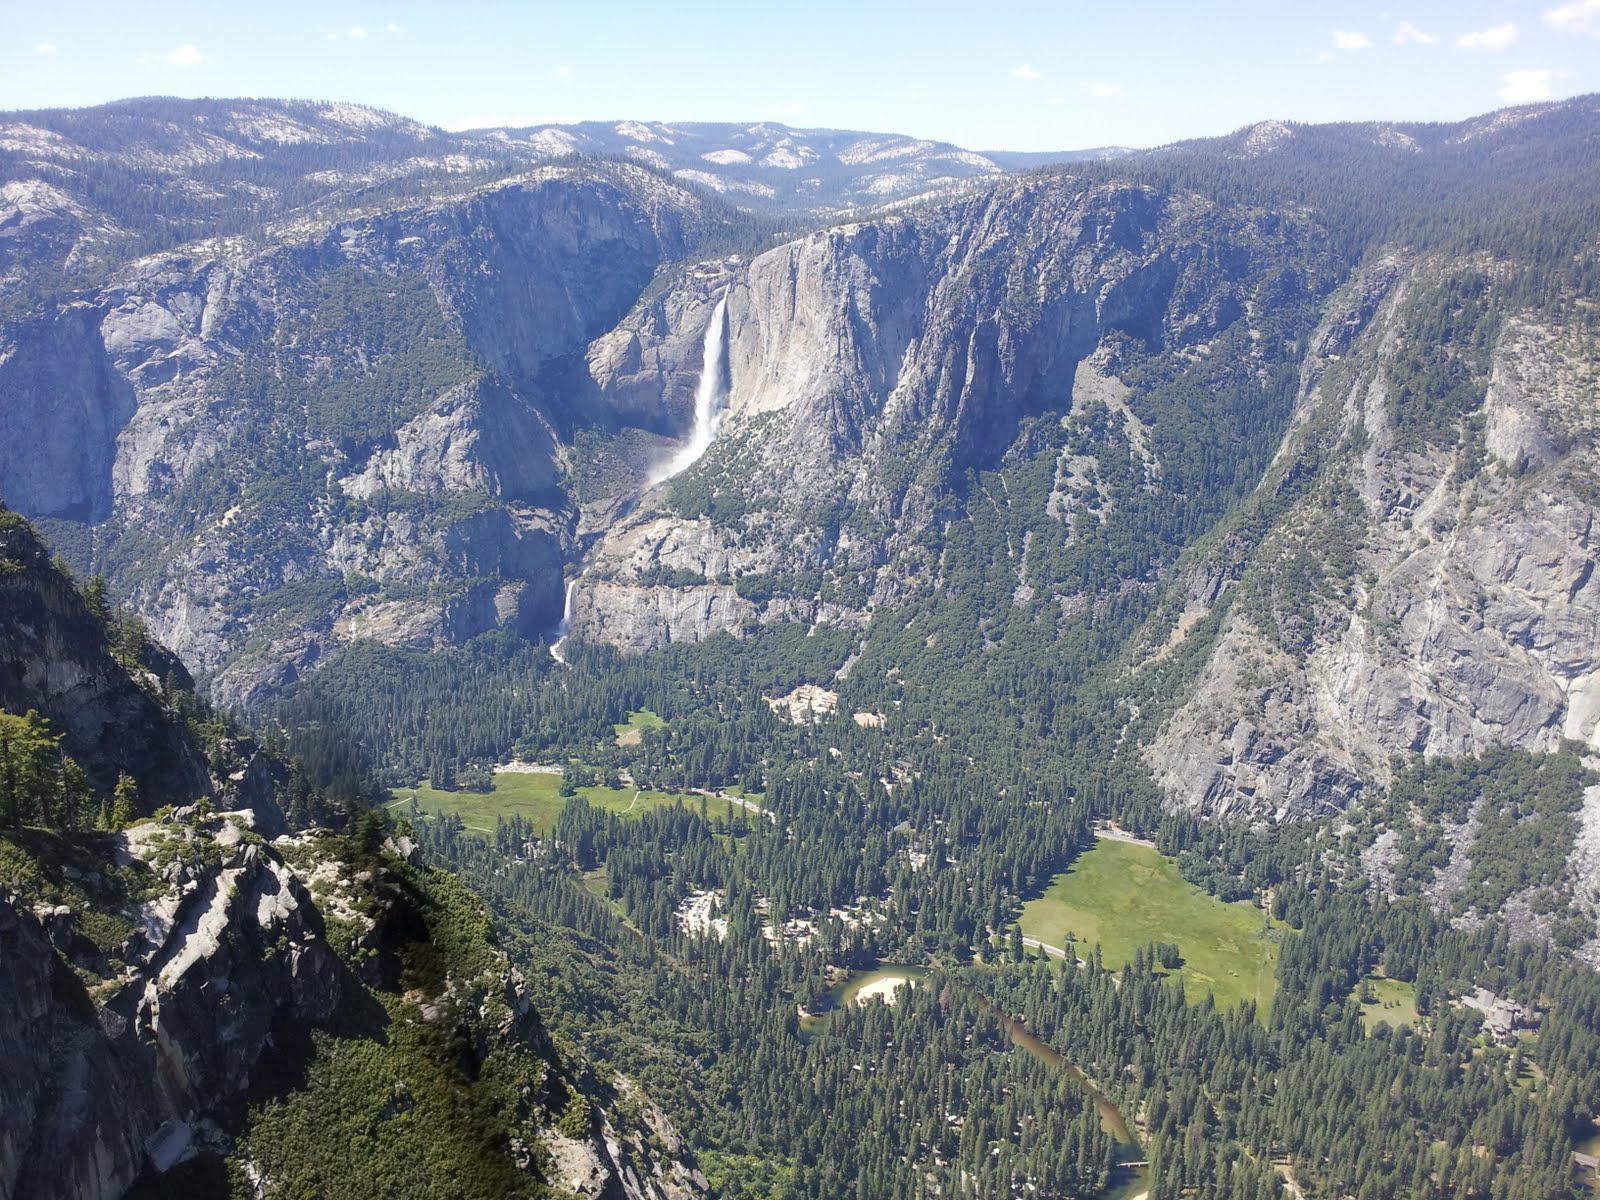 yosemite village catholic girl personals -- a boiler explosion on the steamer yosemite, of san francisco, kills fifty-four persons and wound many others 12 -- another earthquake shakes up california.